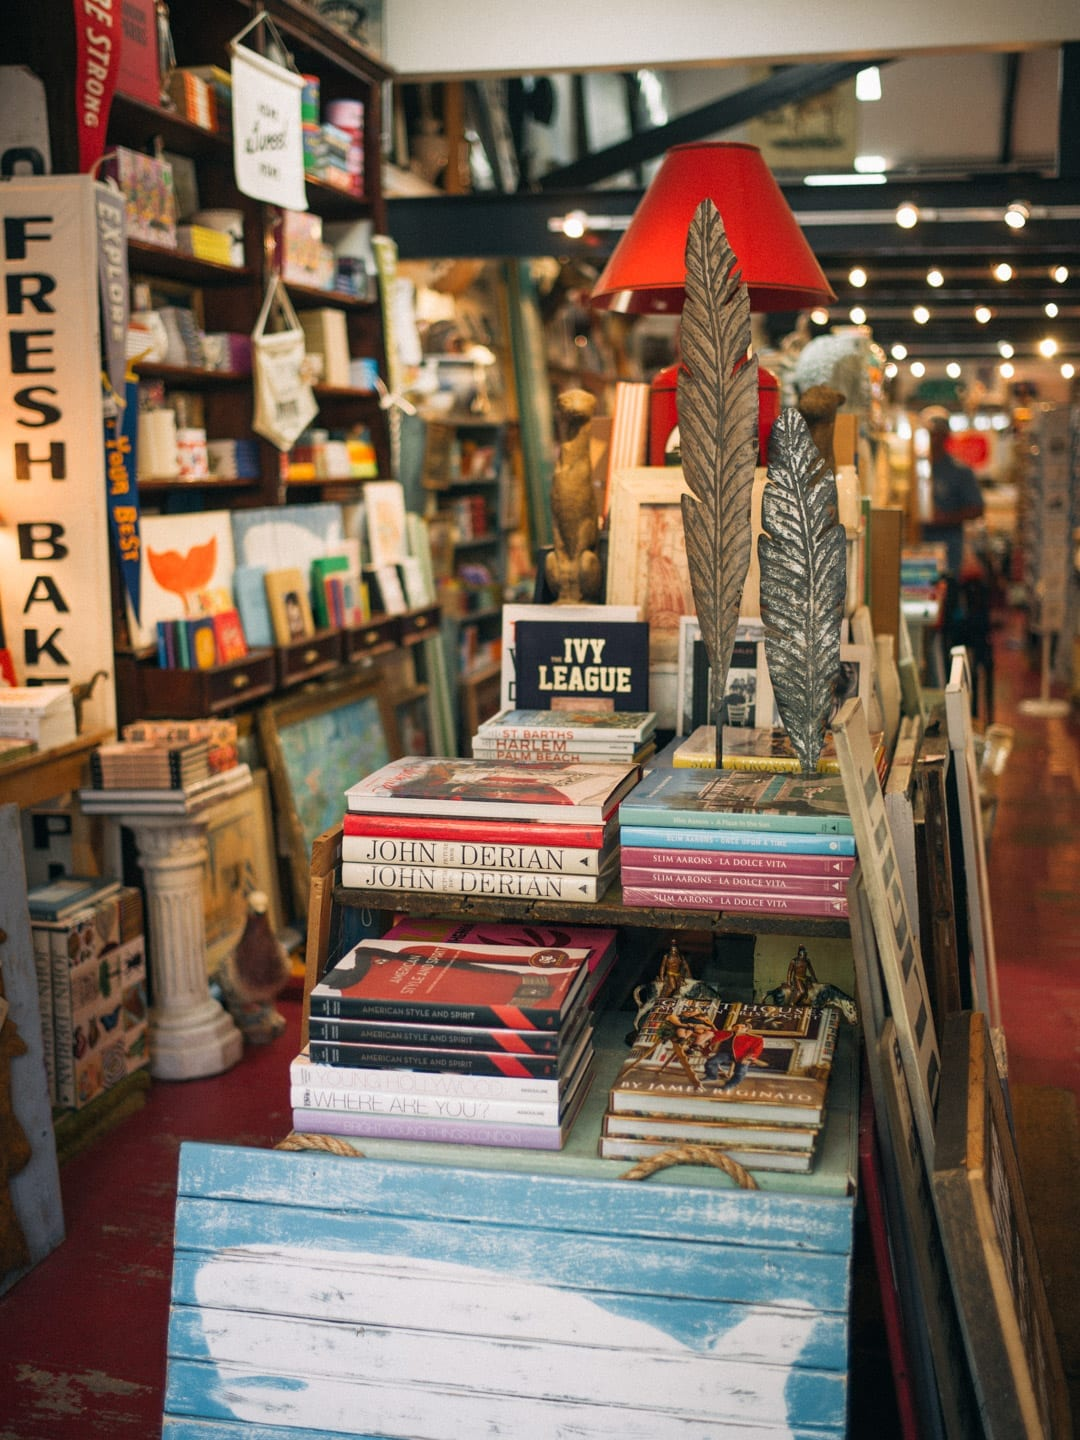 Martha's Vineyard Guide - Inside a cozy bookstore on Martha's Vineyard